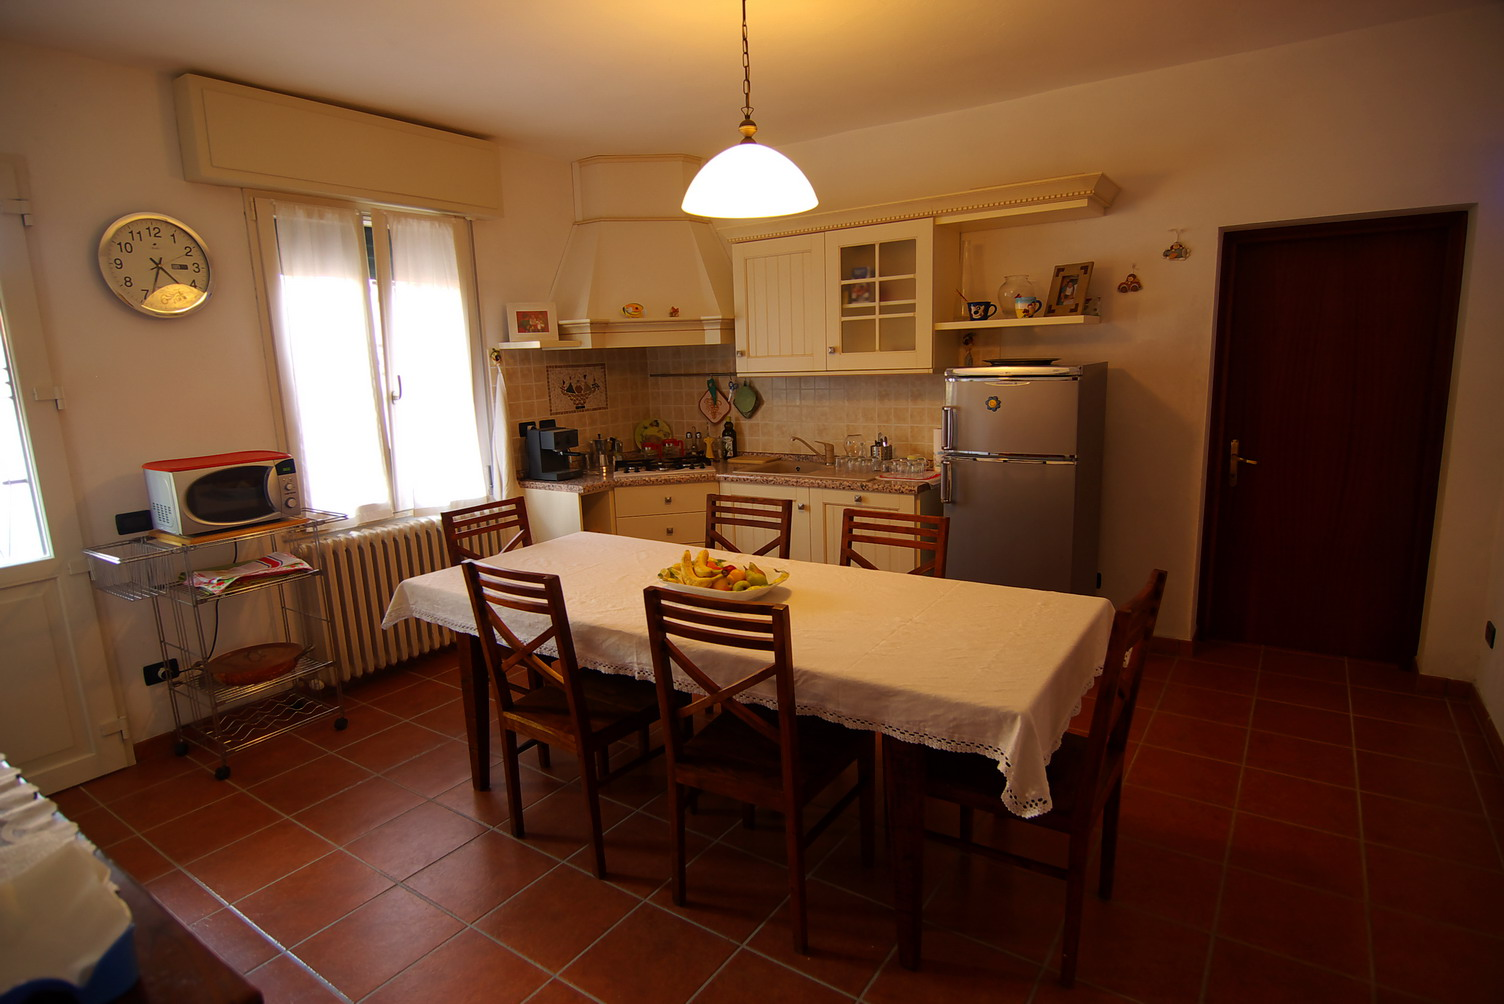 B&B Le Tortorelle Bed and Breakfast Argenta